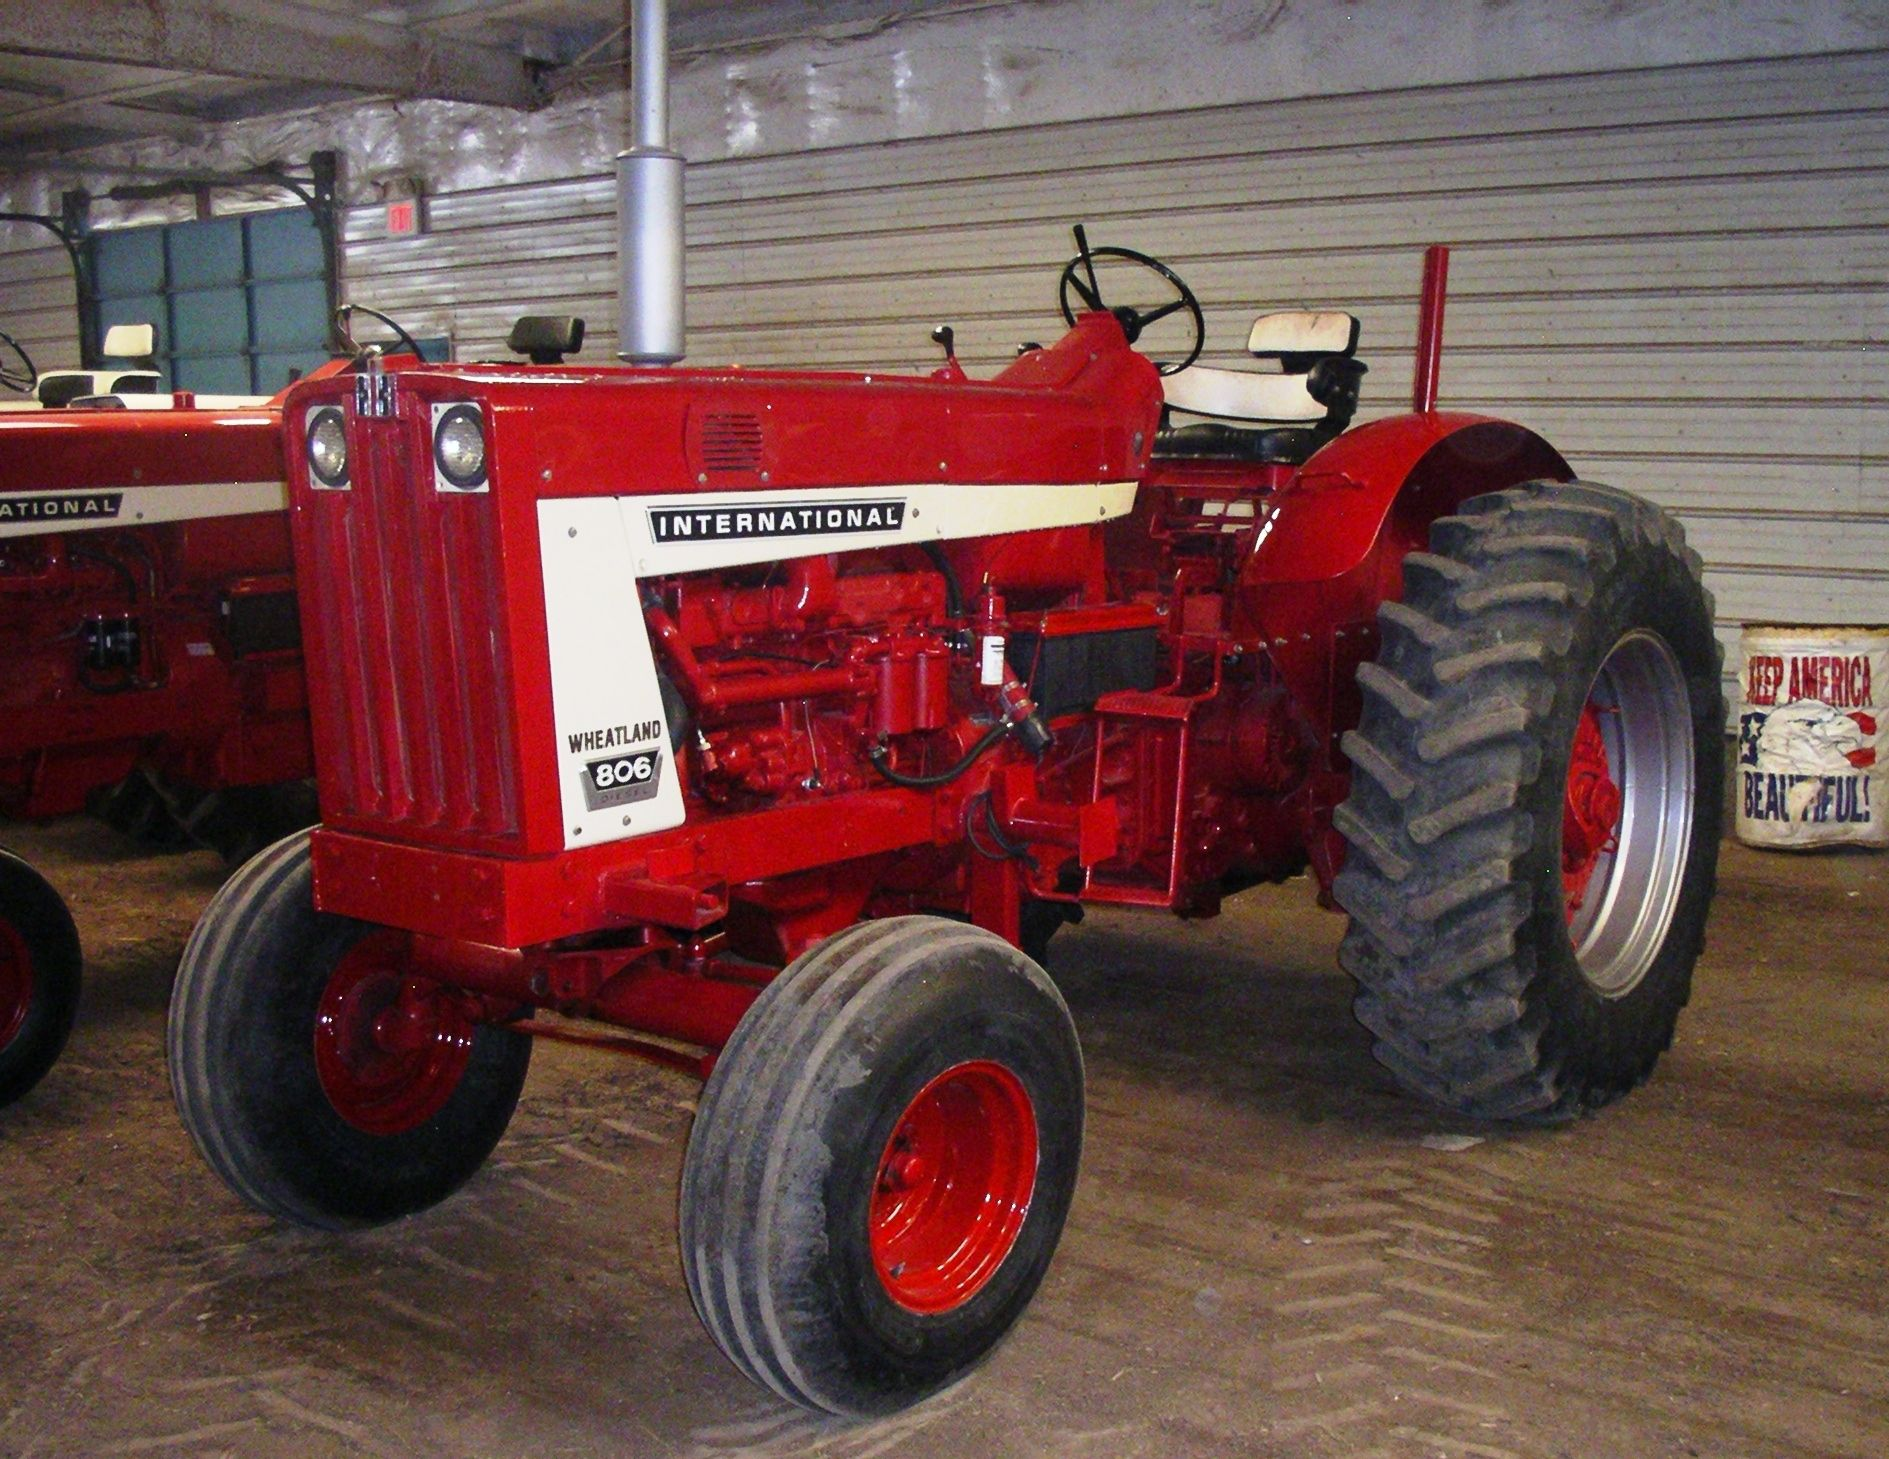 1964 ih 806 wheatland tractors international harvester